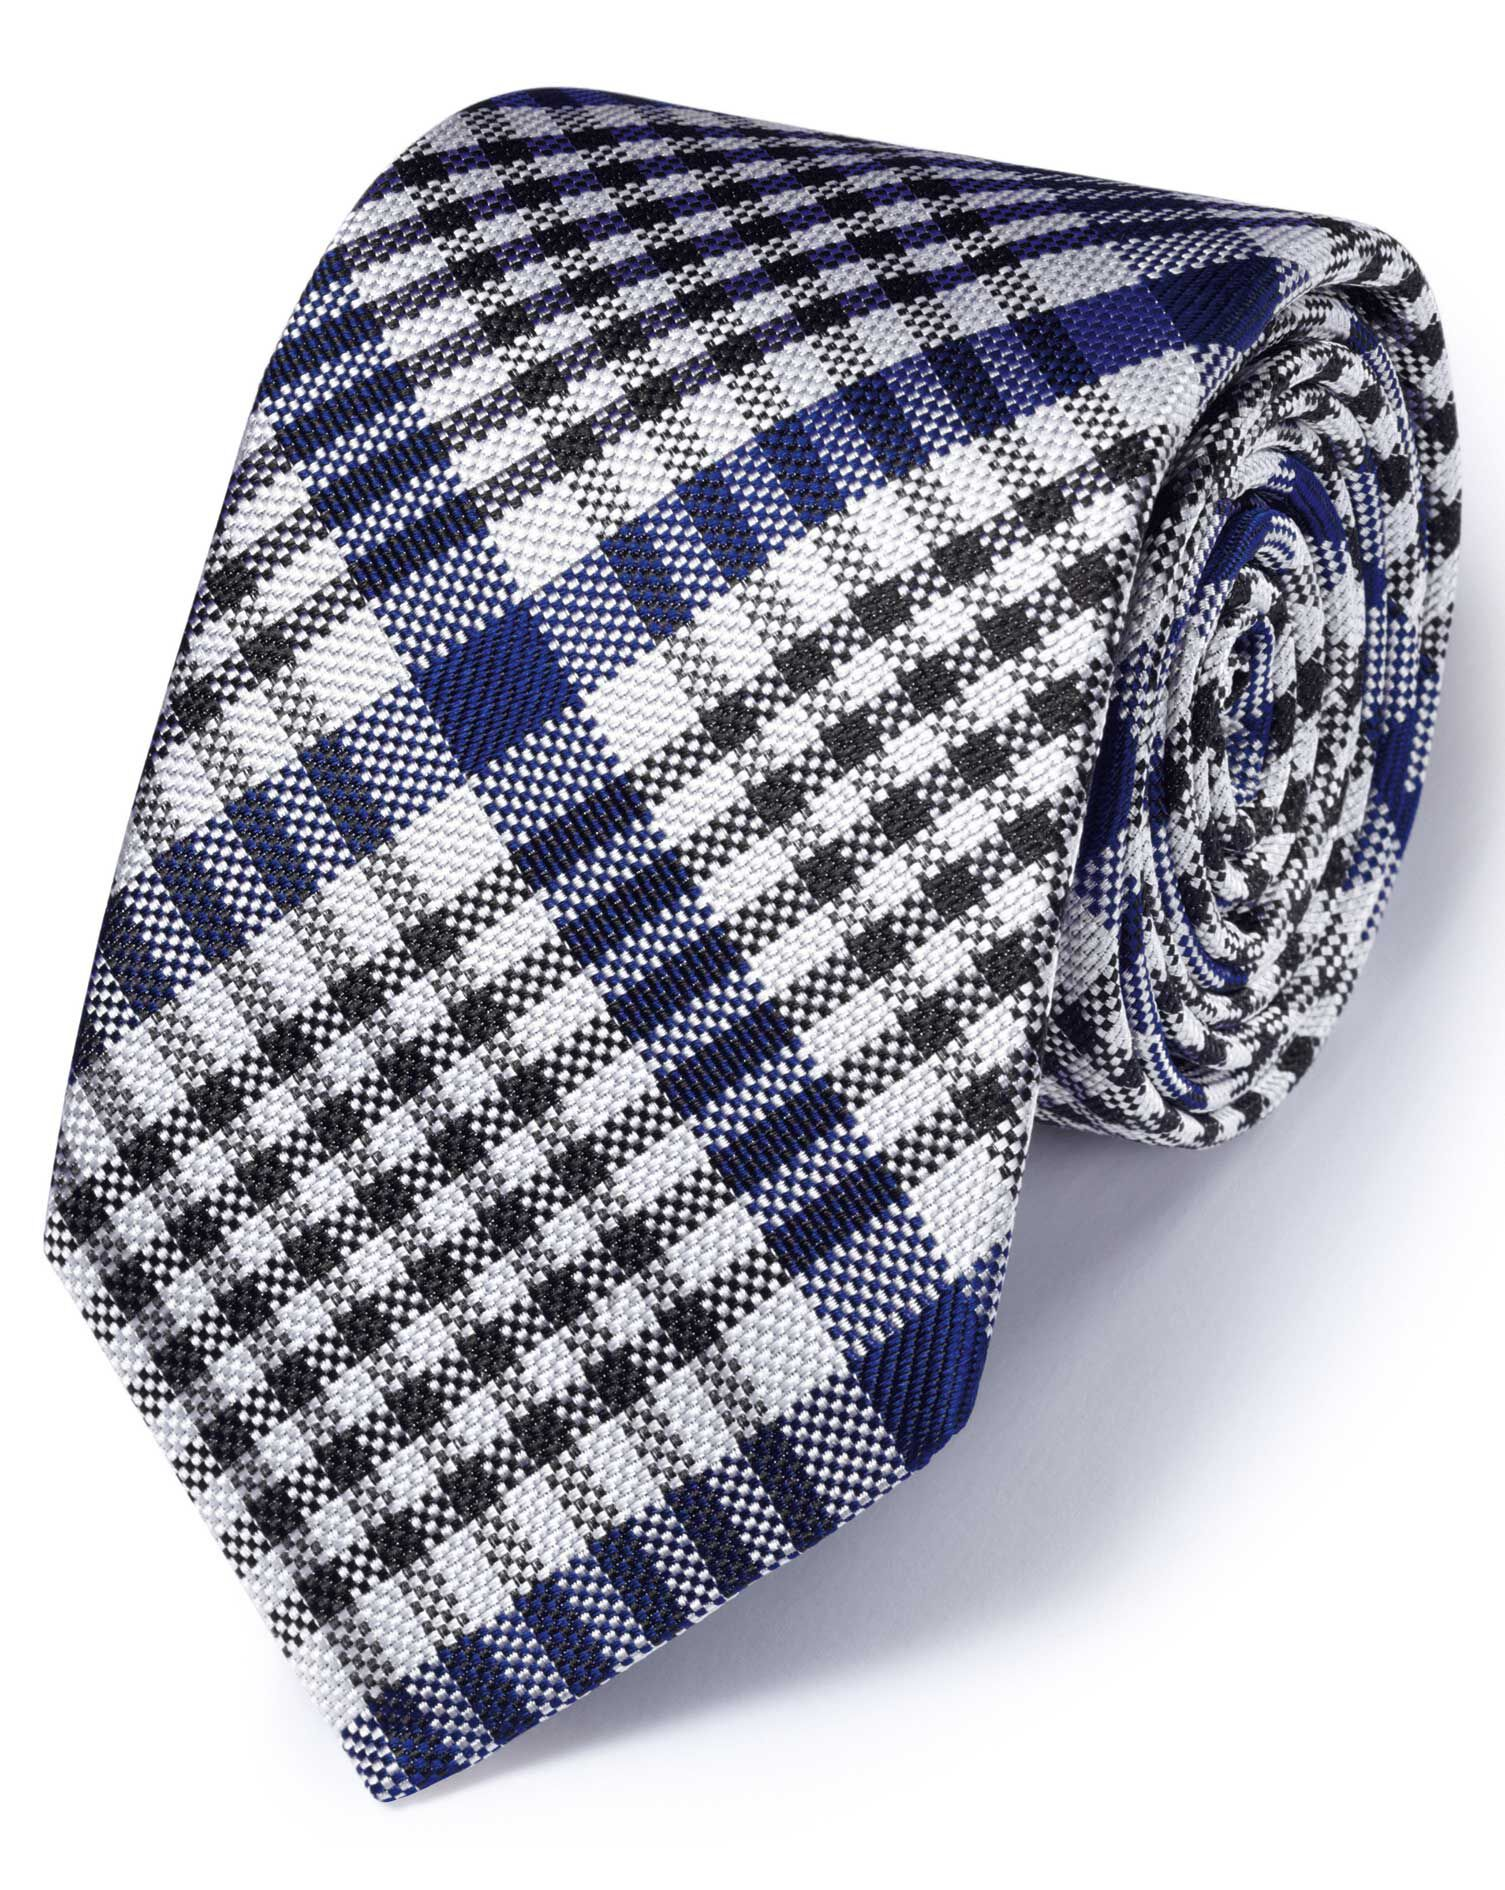 Royal Silk English Luxury End-On-End Checkered Tie Size OSFA by Charles Tyrwhitt